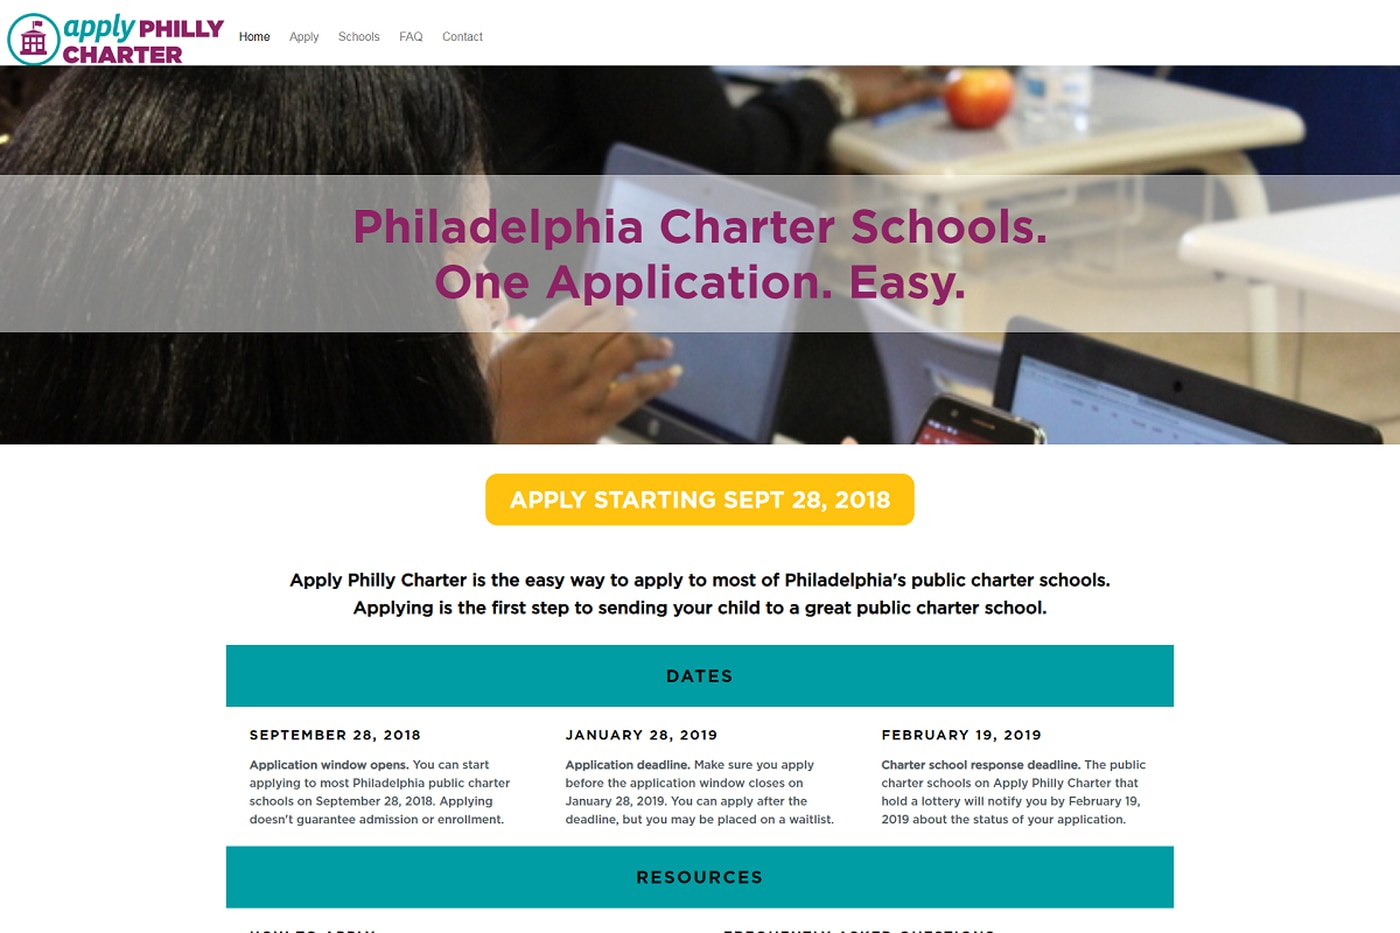 On new website, parents, students can apply to dozens of Philly charter schools at once